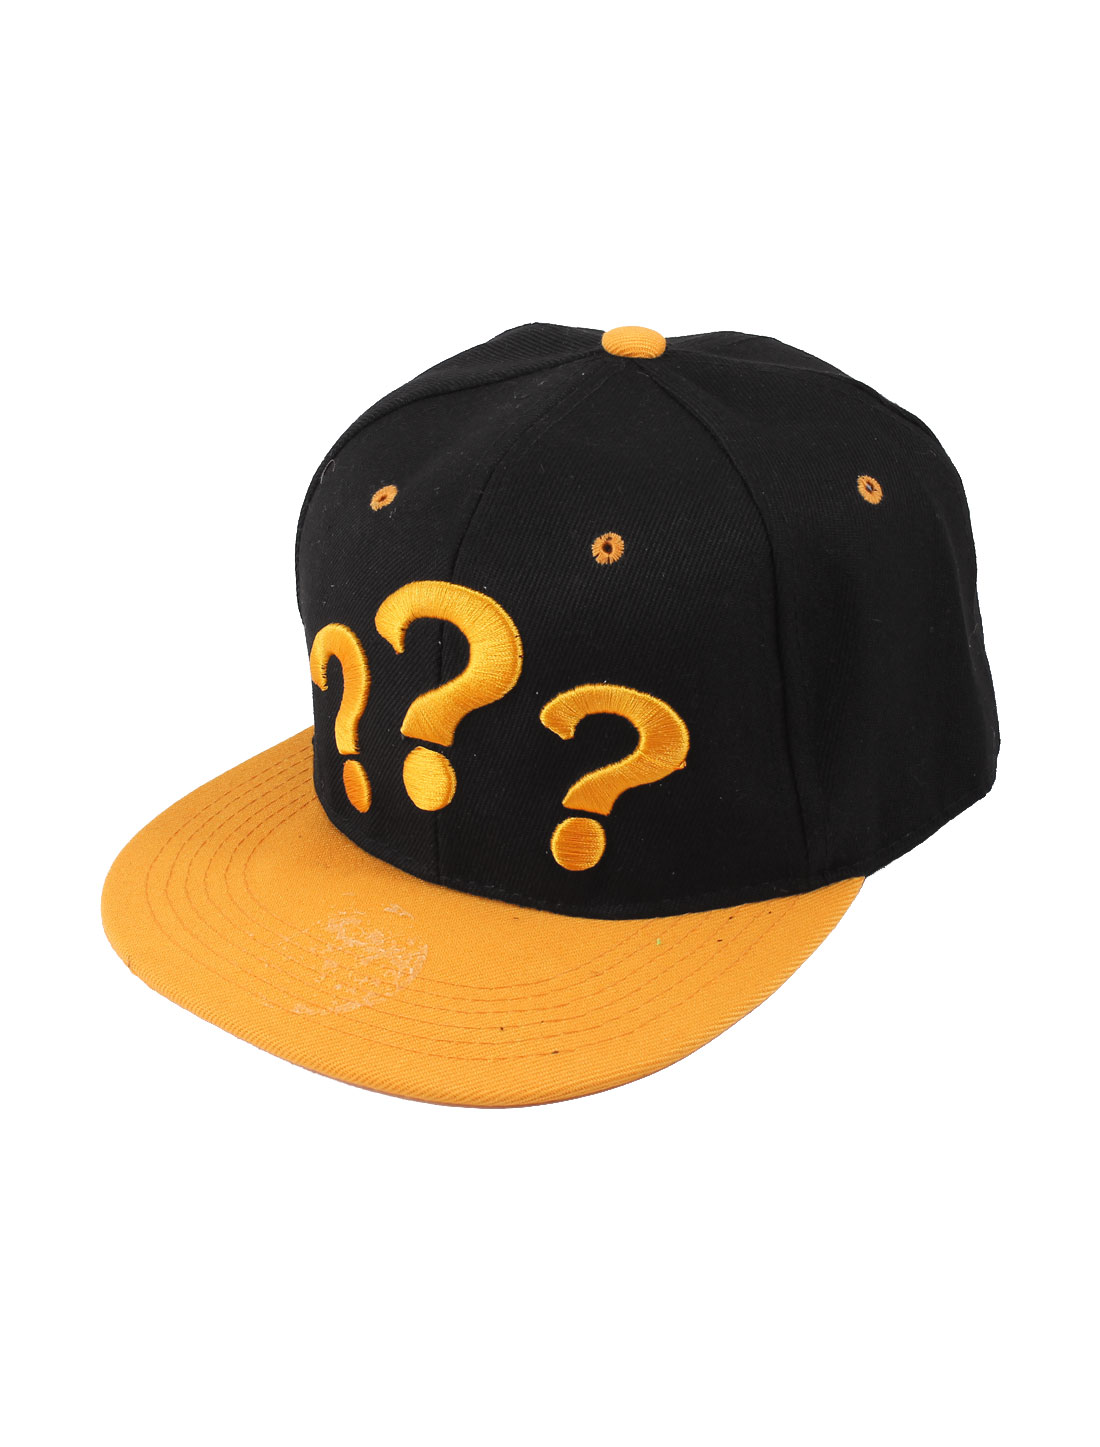 Unisex Orange Question Mark Detailed Adjustable Hip-hop Cricket Ball Golf Tennis Baseball Sun Visor Cap